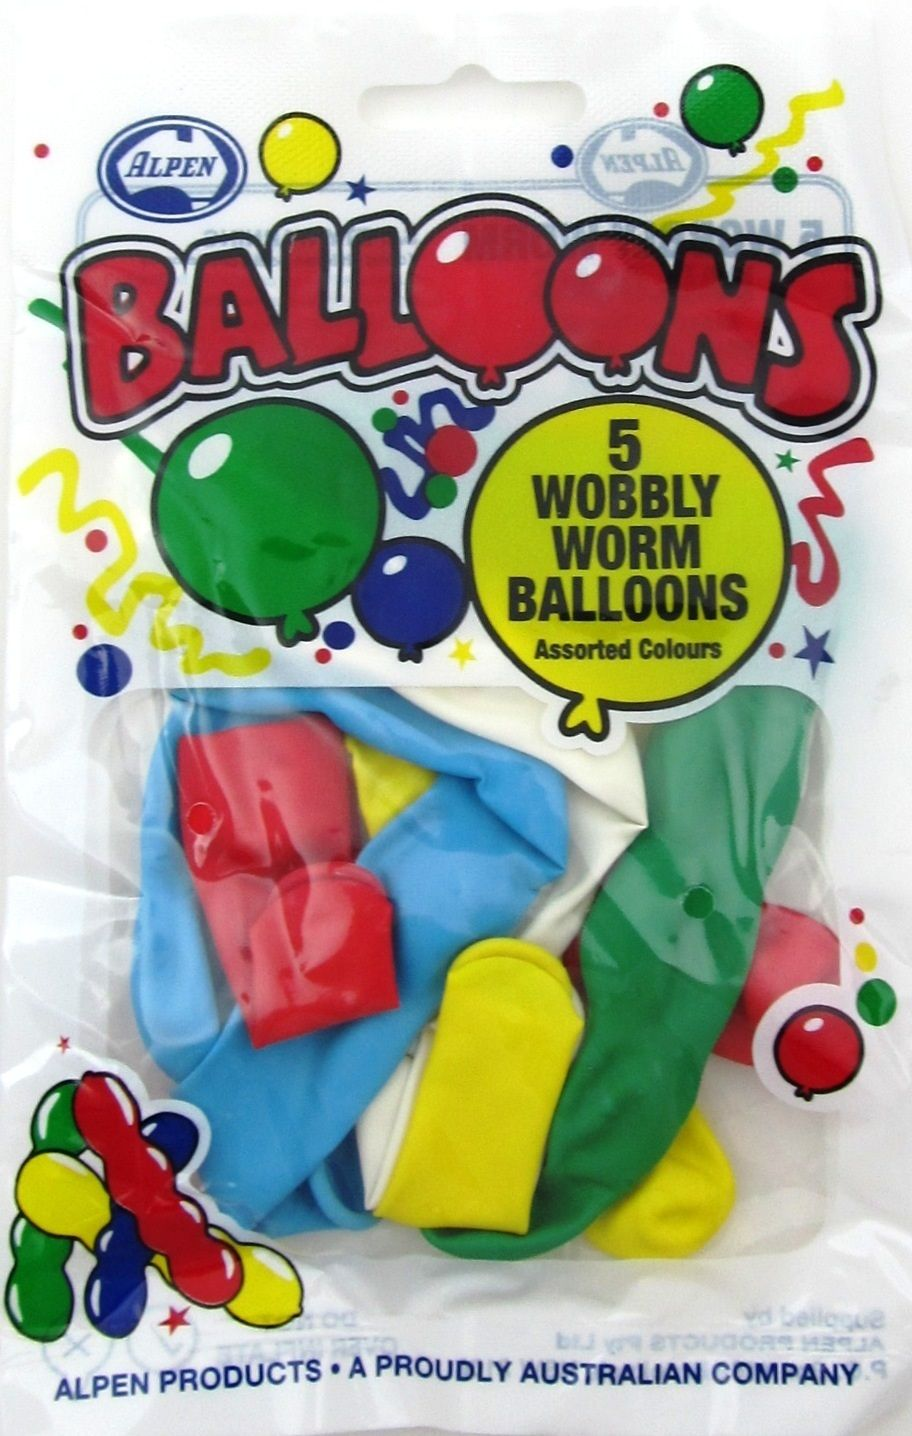 PARTY FAVOURS - WOBBLY WORM BALLOONS PACK OF 5